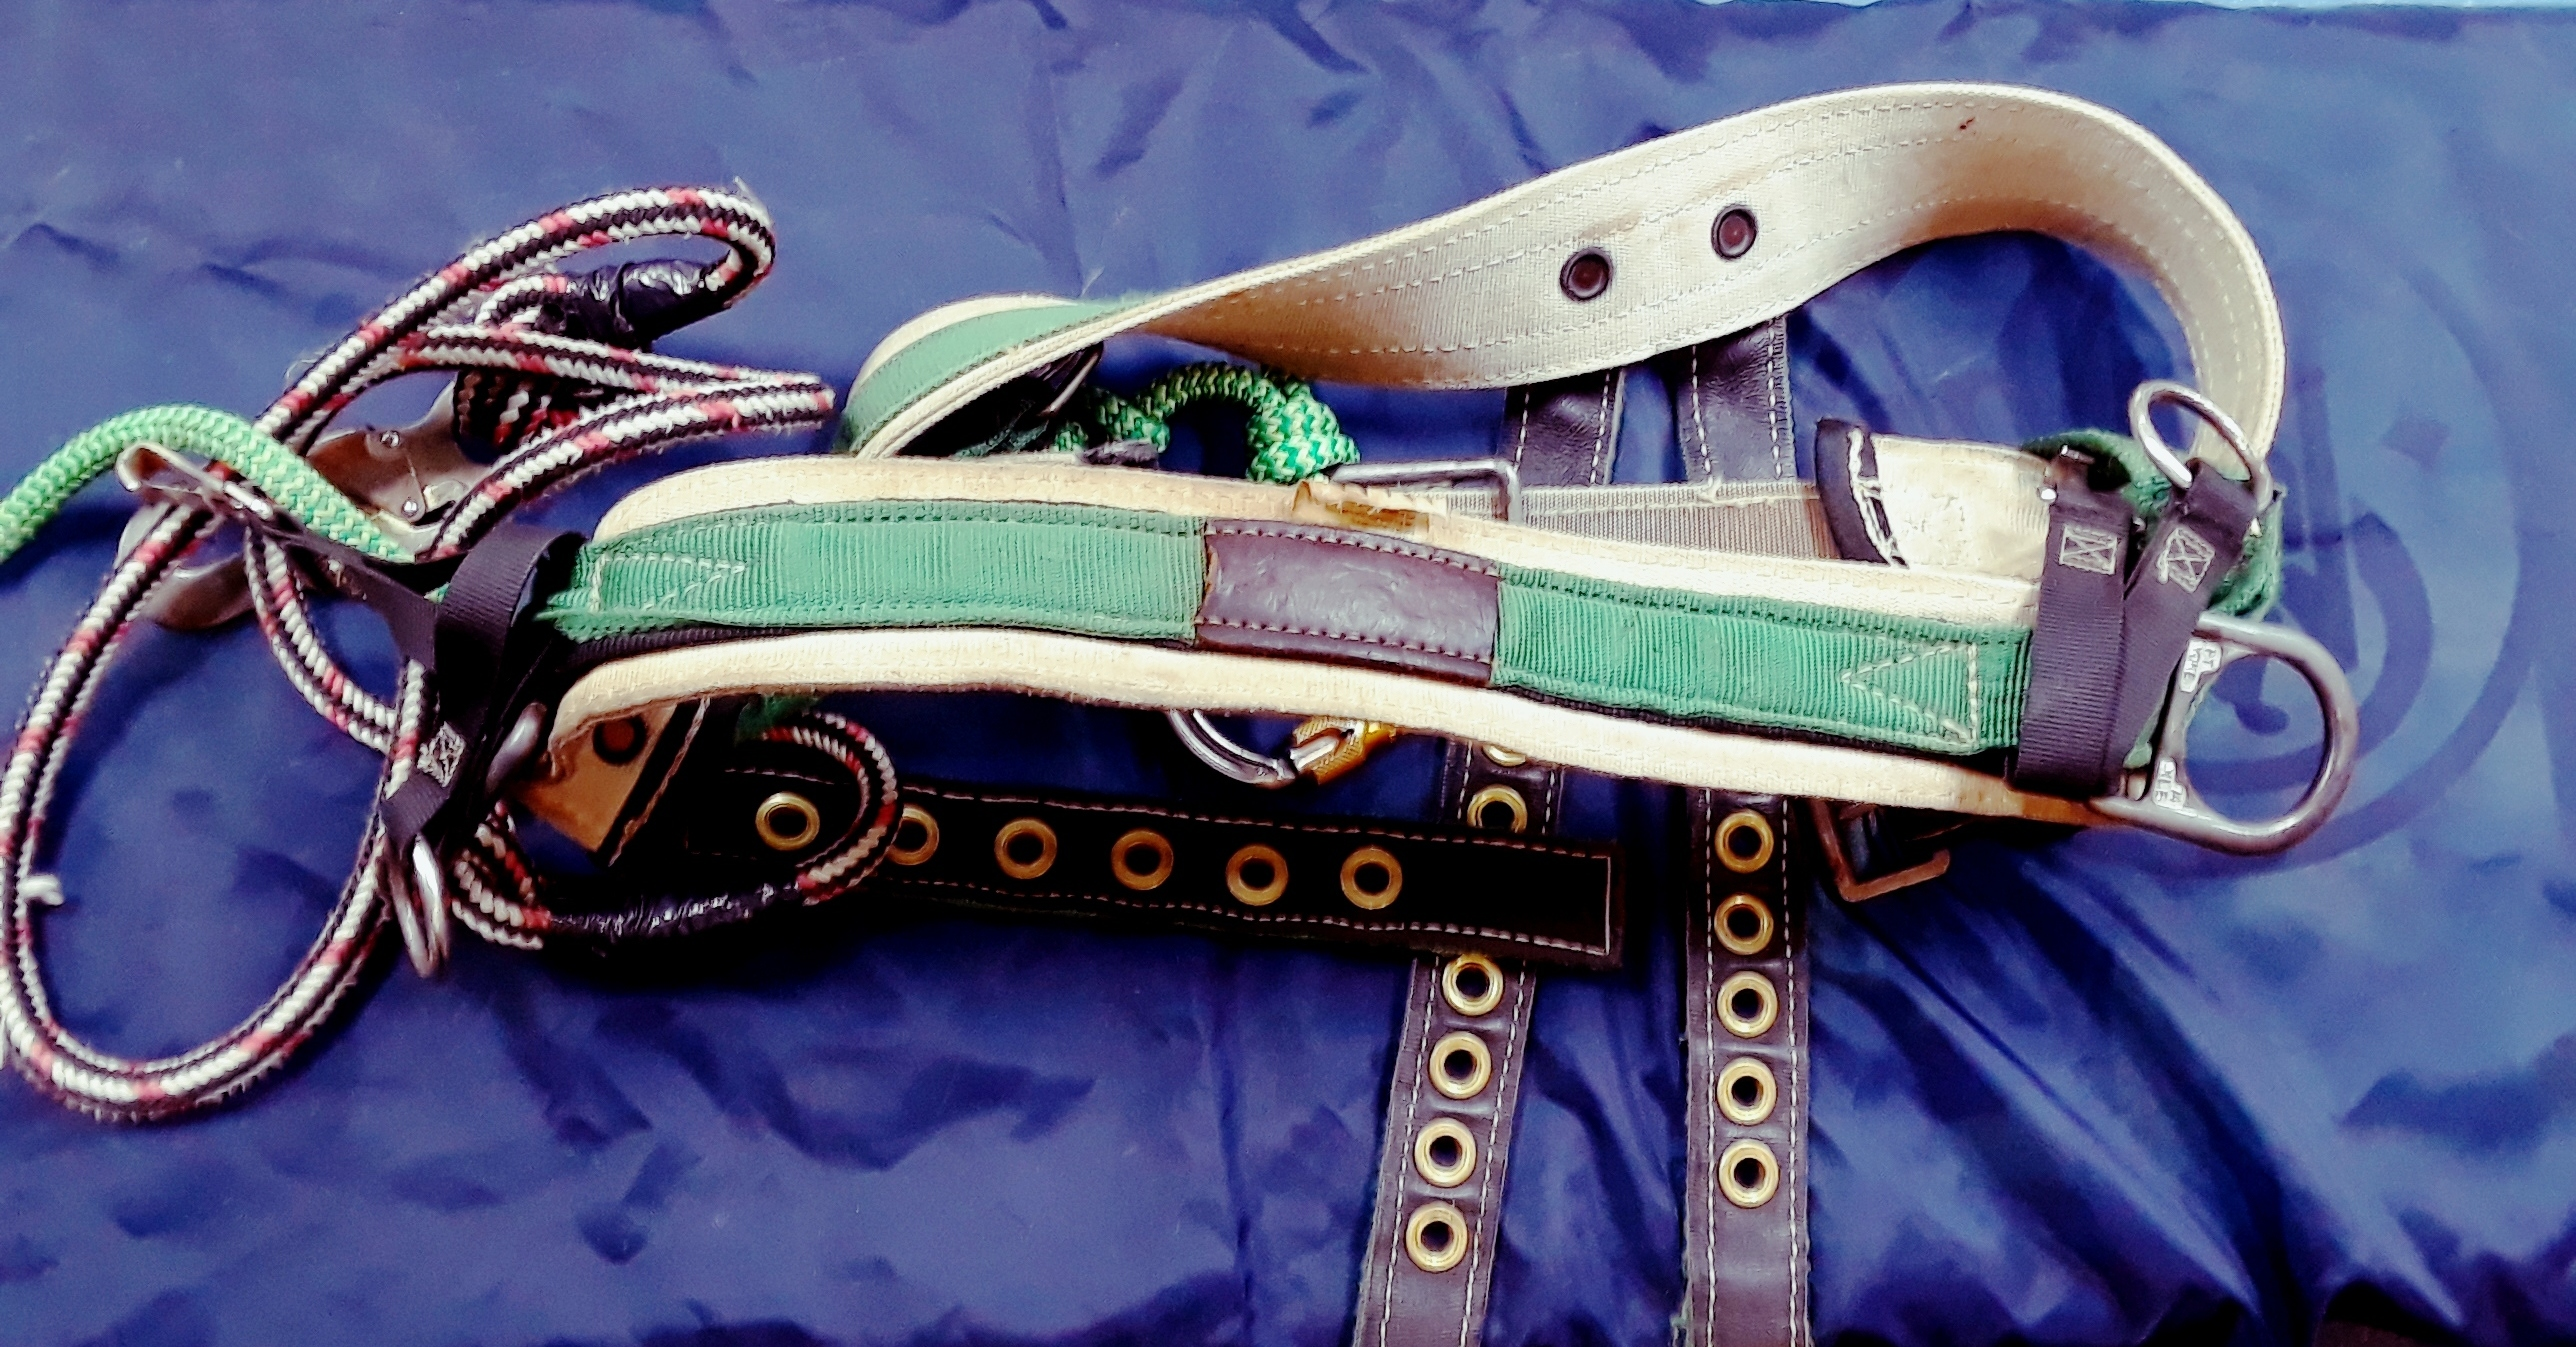 SPORTING EQUIPMENT: CLIMBING BELT - GREEN AND WHITE